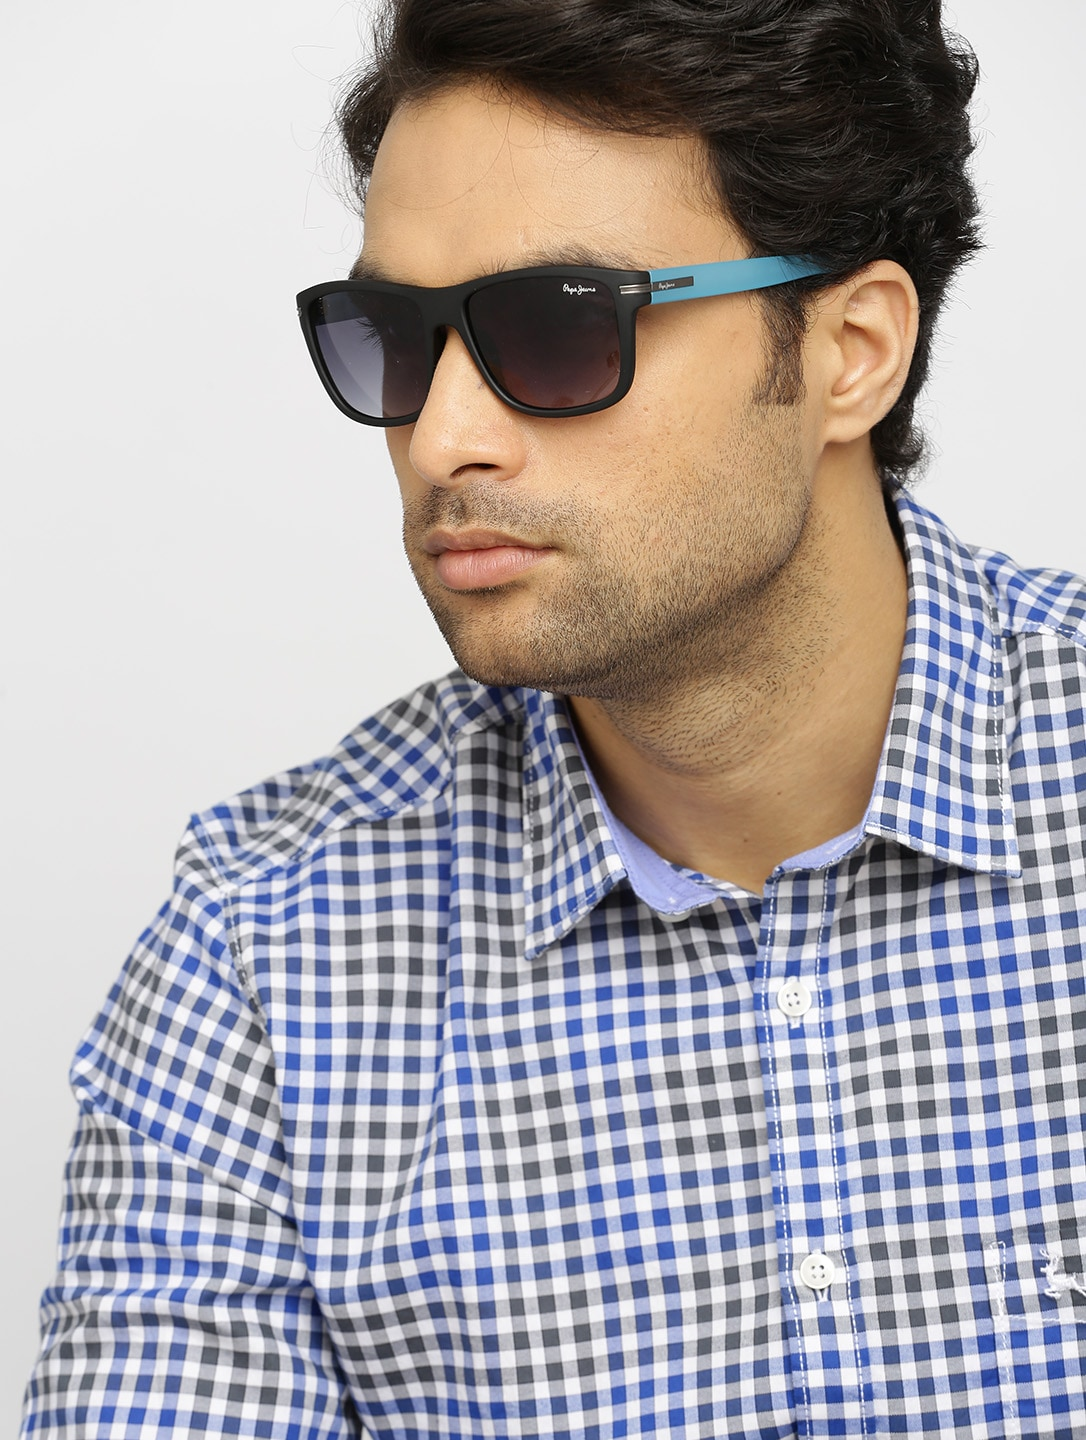 wayfarer sunglasses men  wayfarer sunglasses men